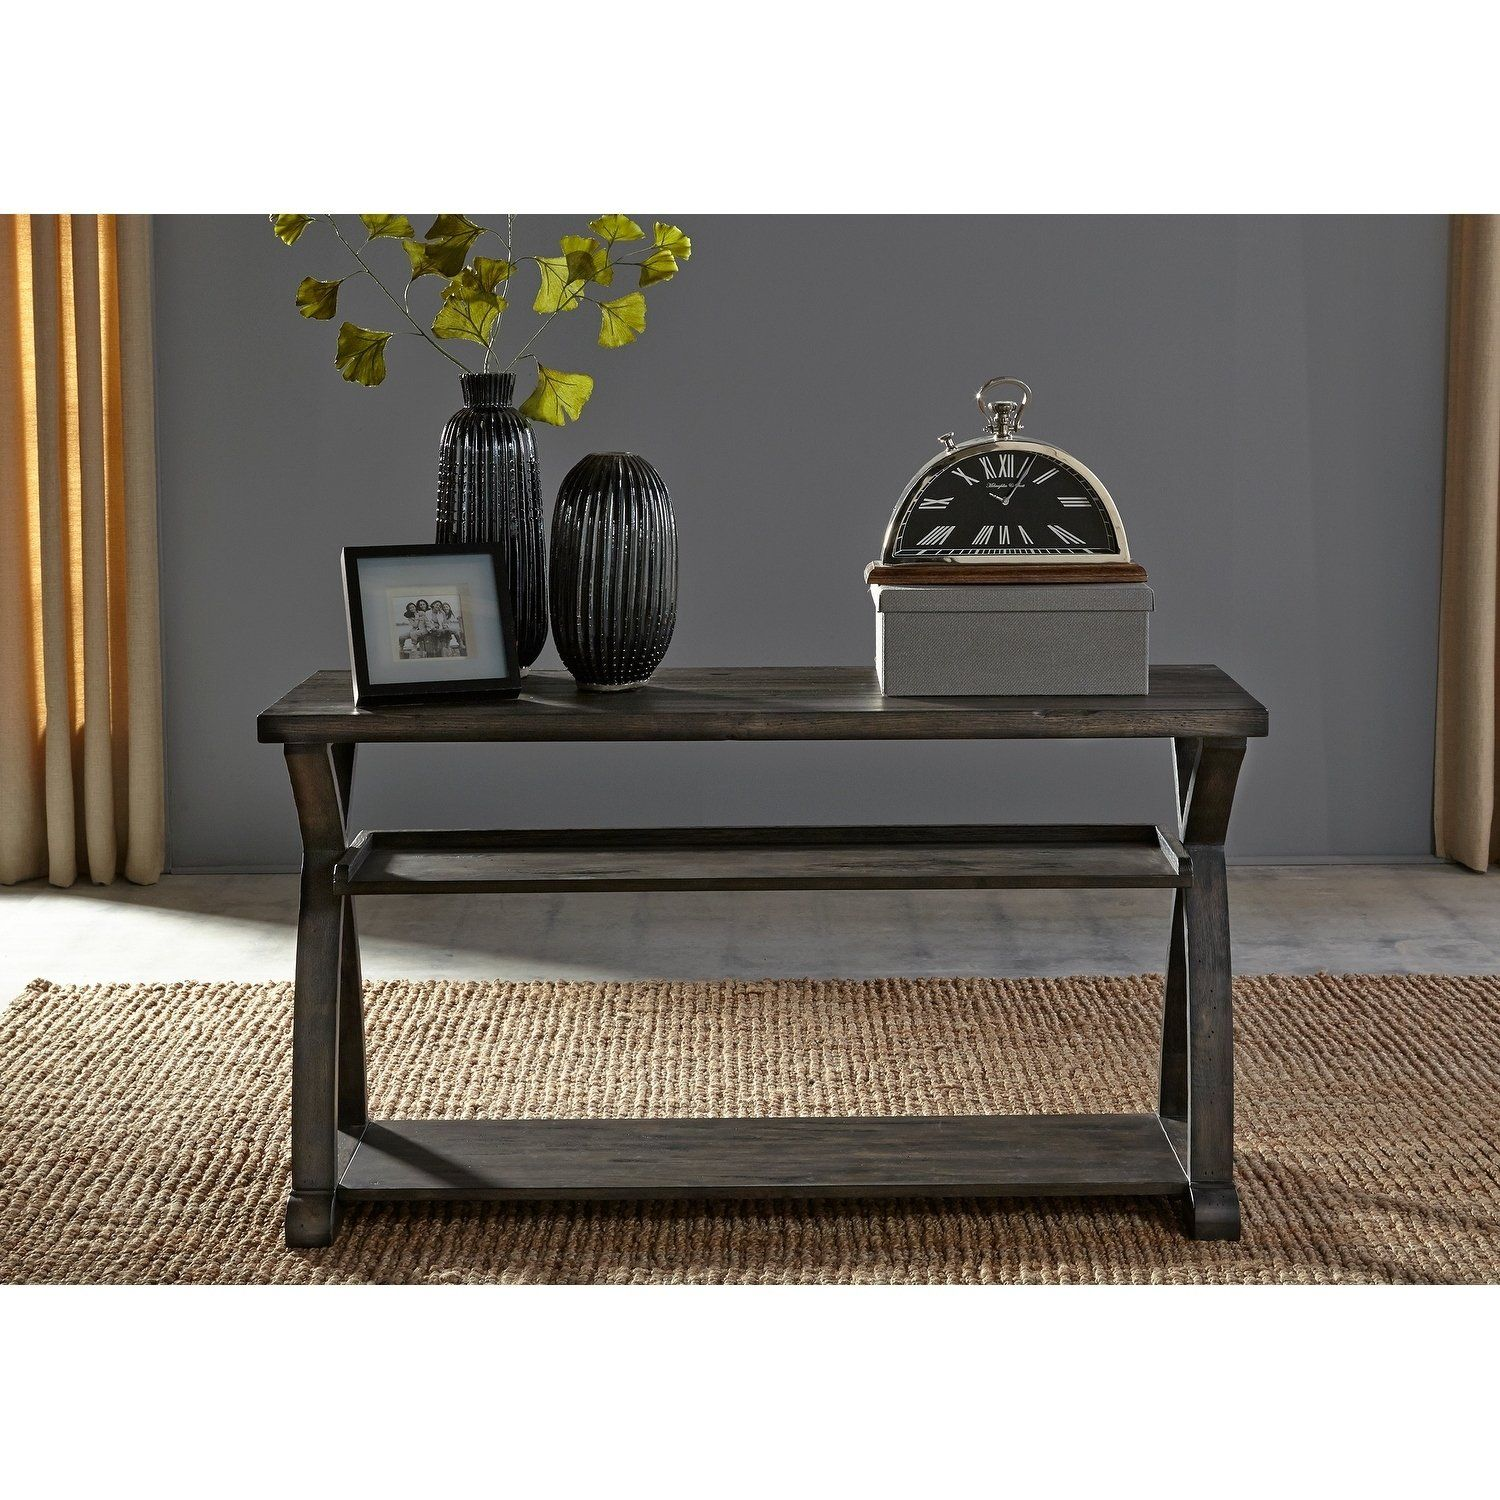 Excellent Twin Oaks Rustic Charcoal Sofa Table Grey Liberty In 2019 Squirreltailoven Fun Painted Chair Ideas Images Squirreltailovenorg